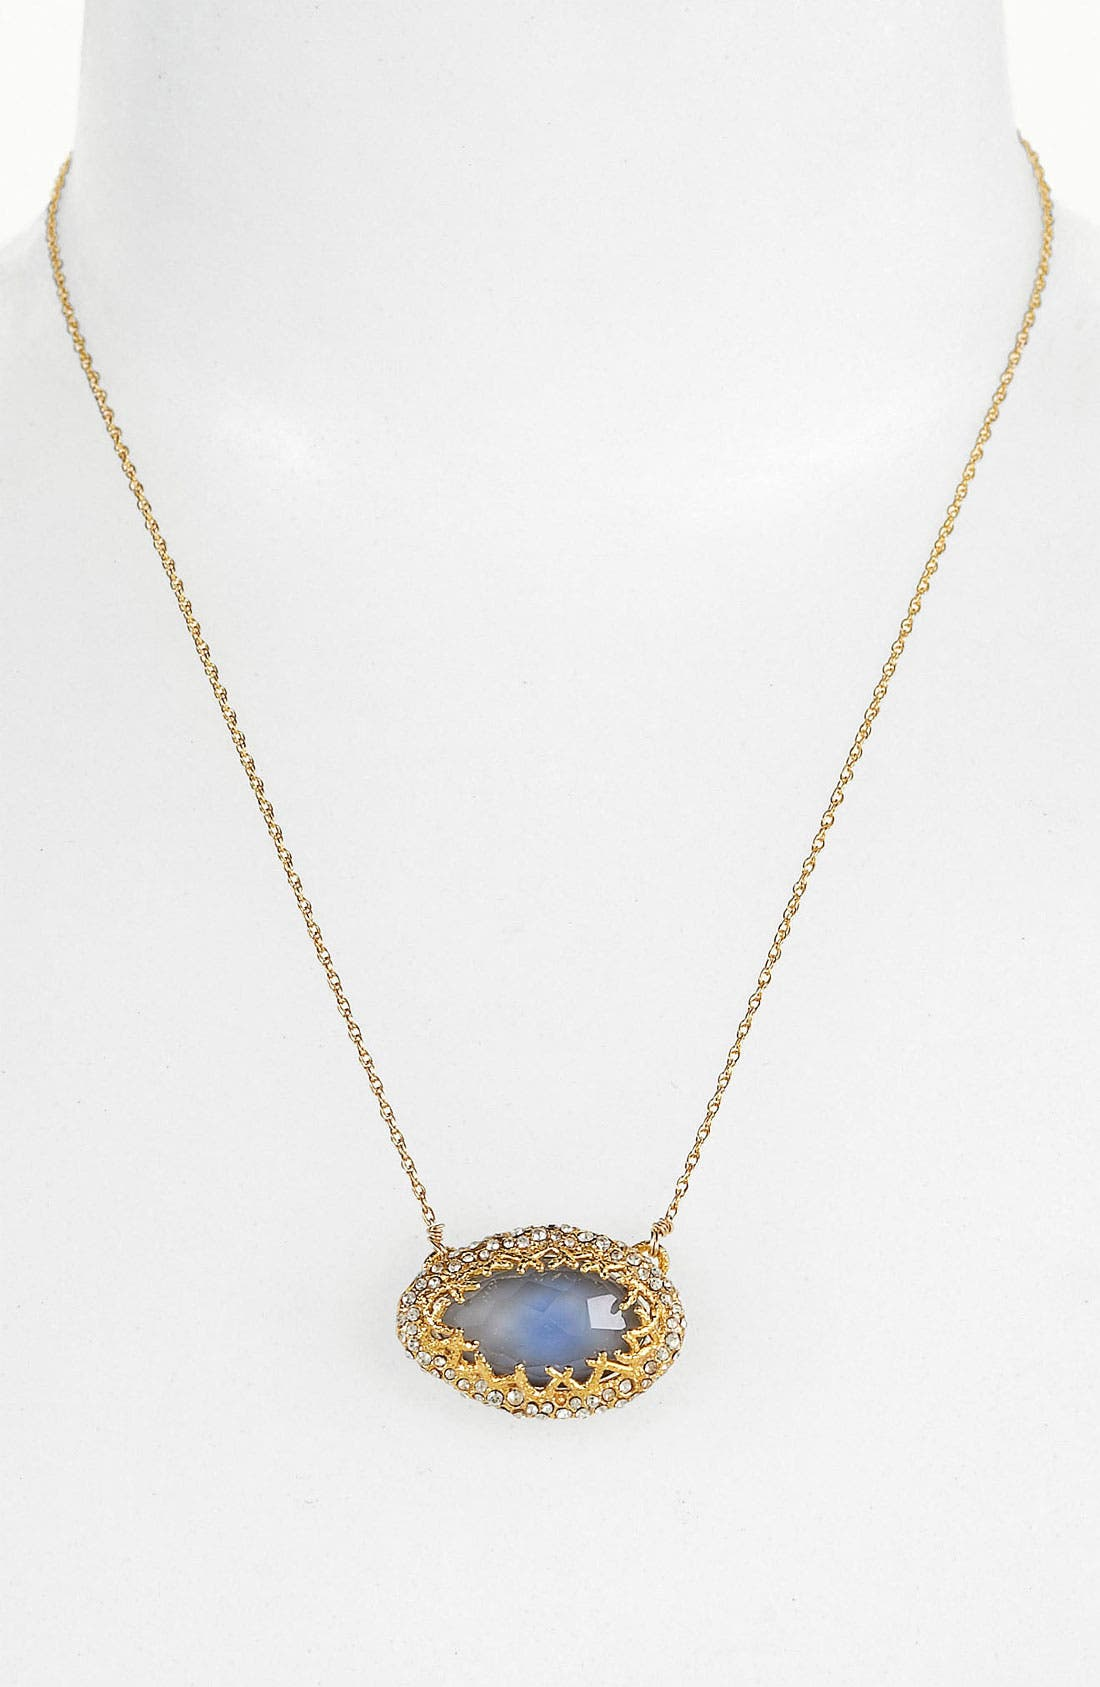 Main Image - Alexis Bittar 'Elements' Pendant Necklace (Nordstrom Exclusive)